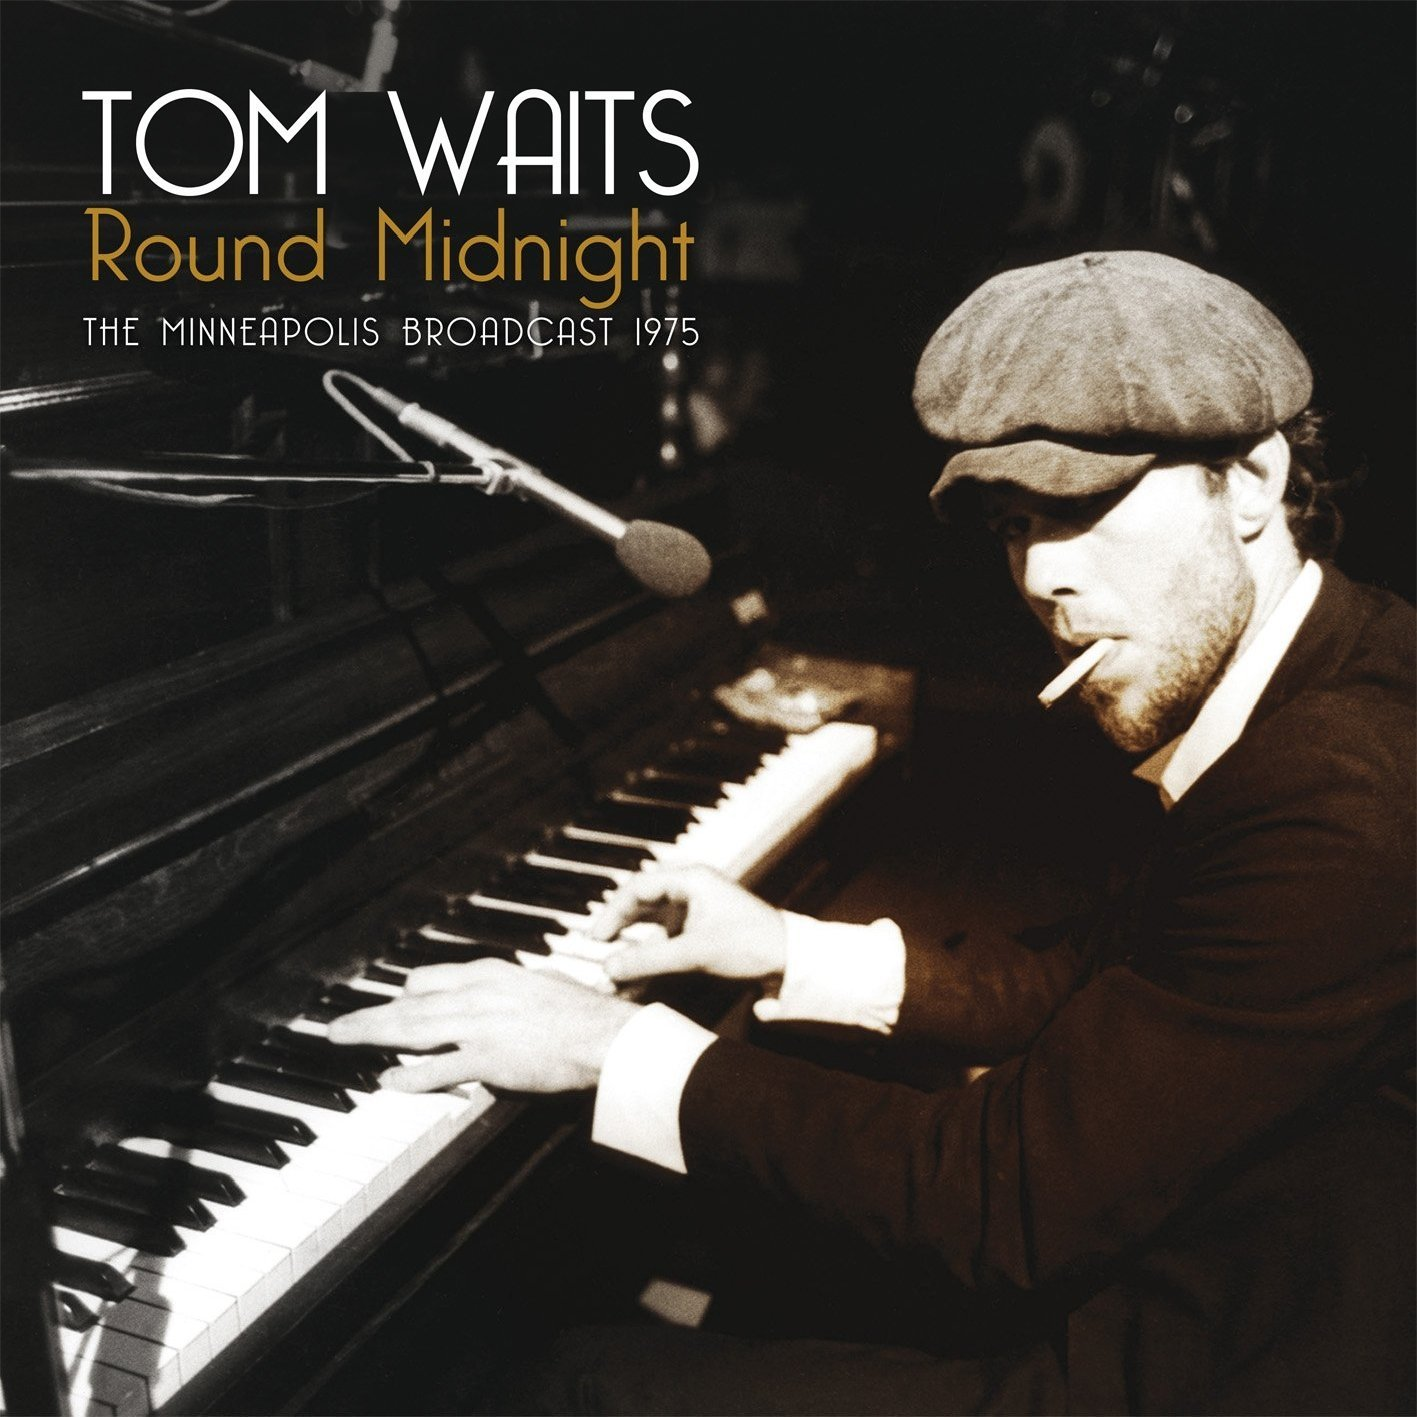 Round Midnight: Minneapolis Broadcast 1975 by Tom Waits